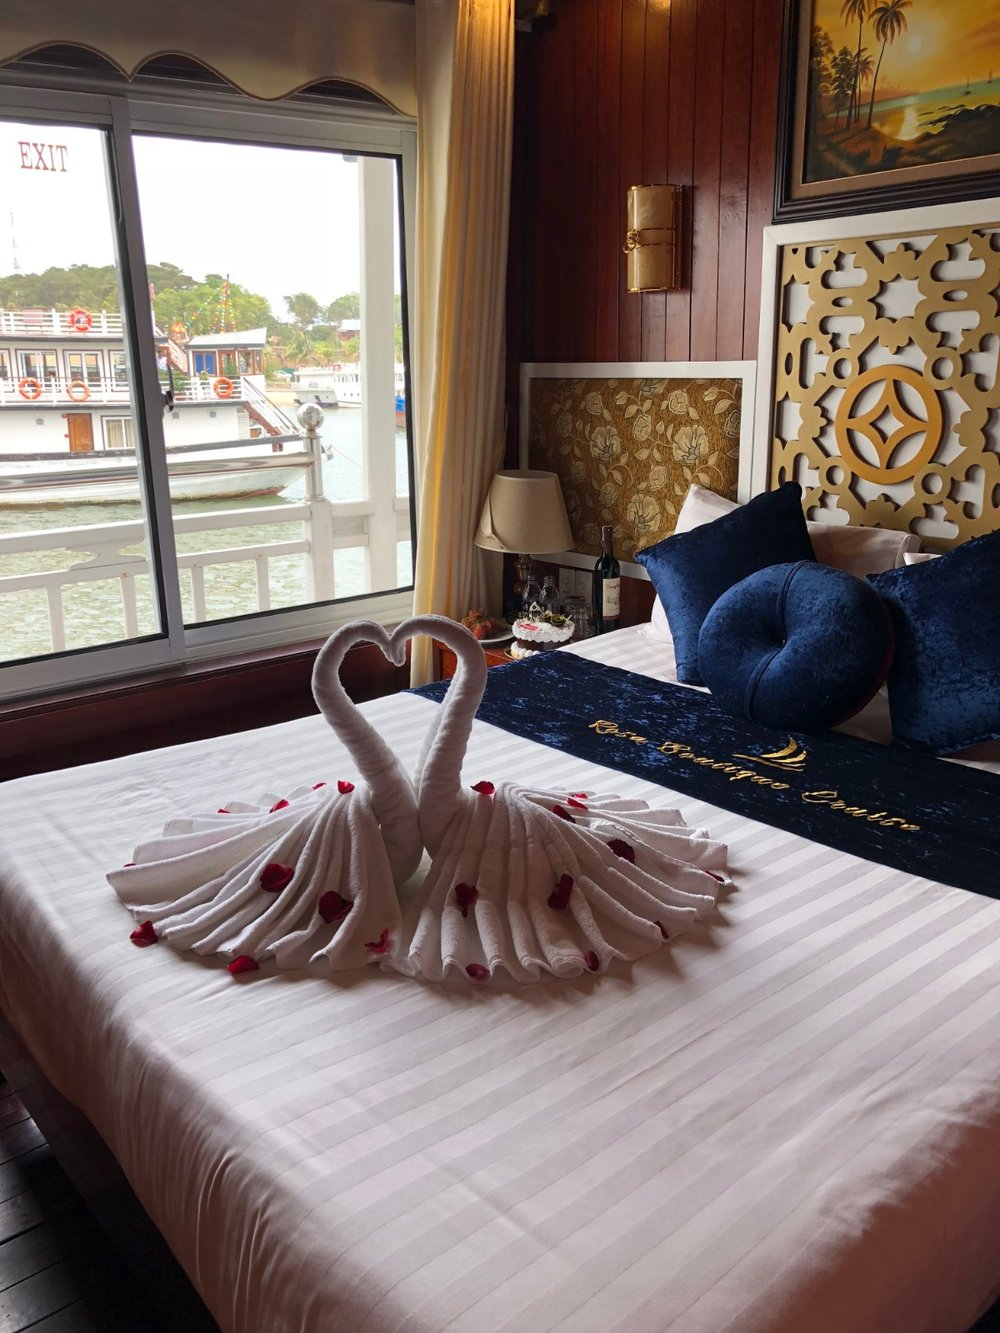 Our Honeymoon room on our three star boat in Ha Long Bay, Vietnam. boldlygotravel.com